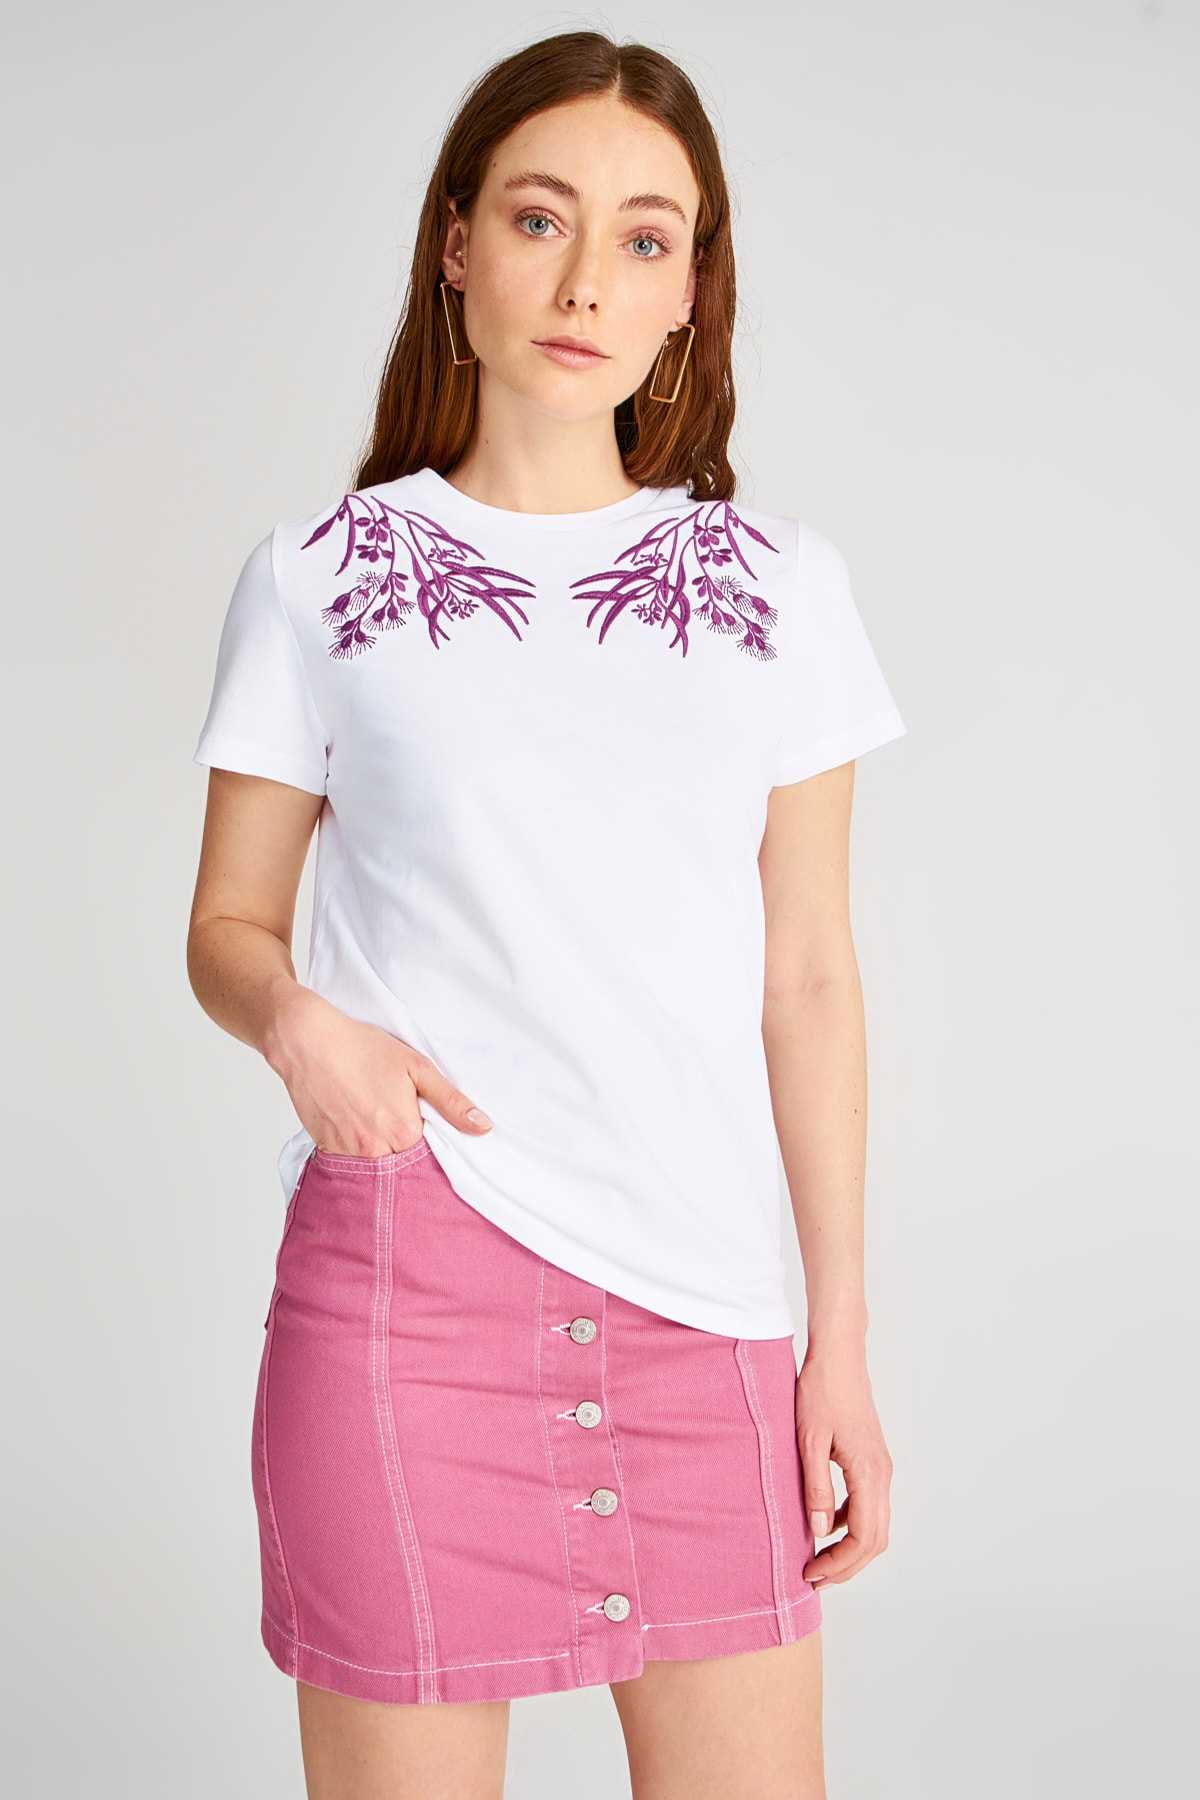 Trendyol Embroidered Basic Knitted T-Shirt TWOSS20TS0845